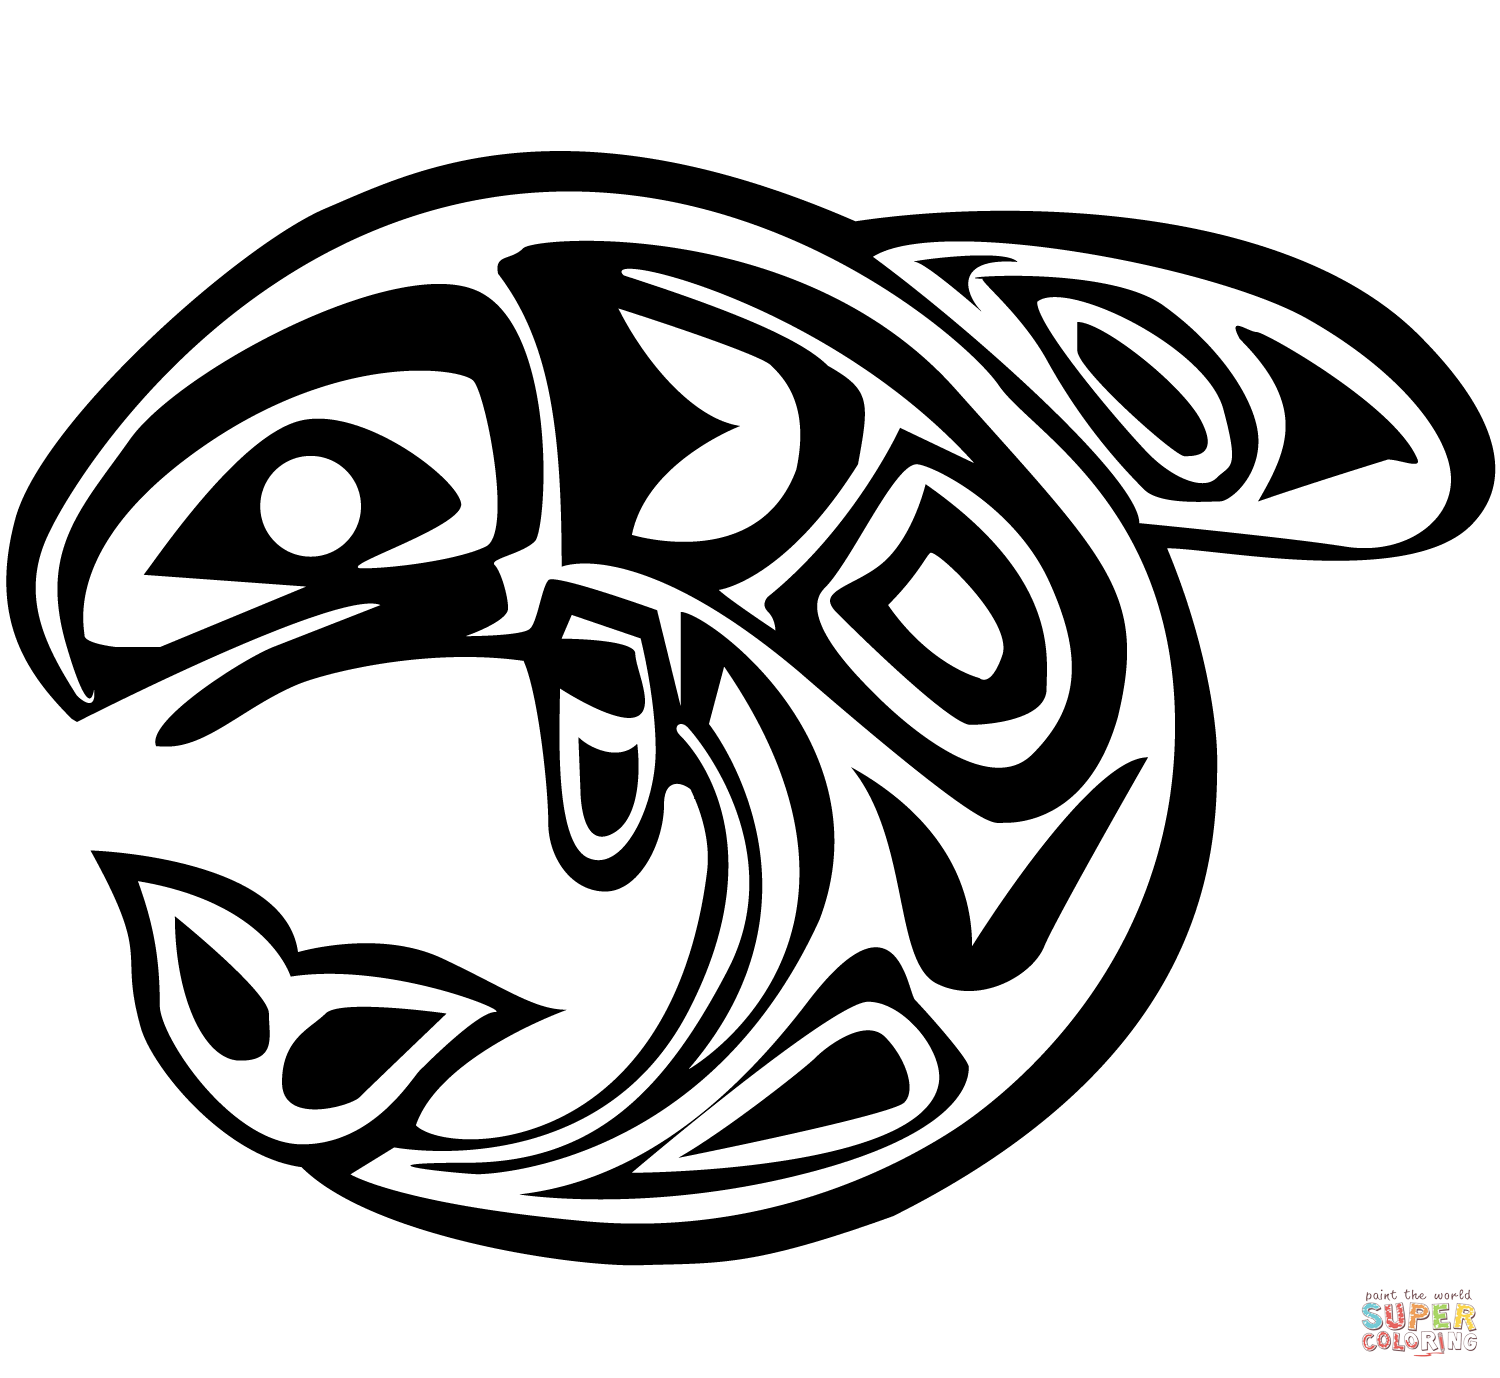 Shoshone Native American Symbols Sketch Coloring Page